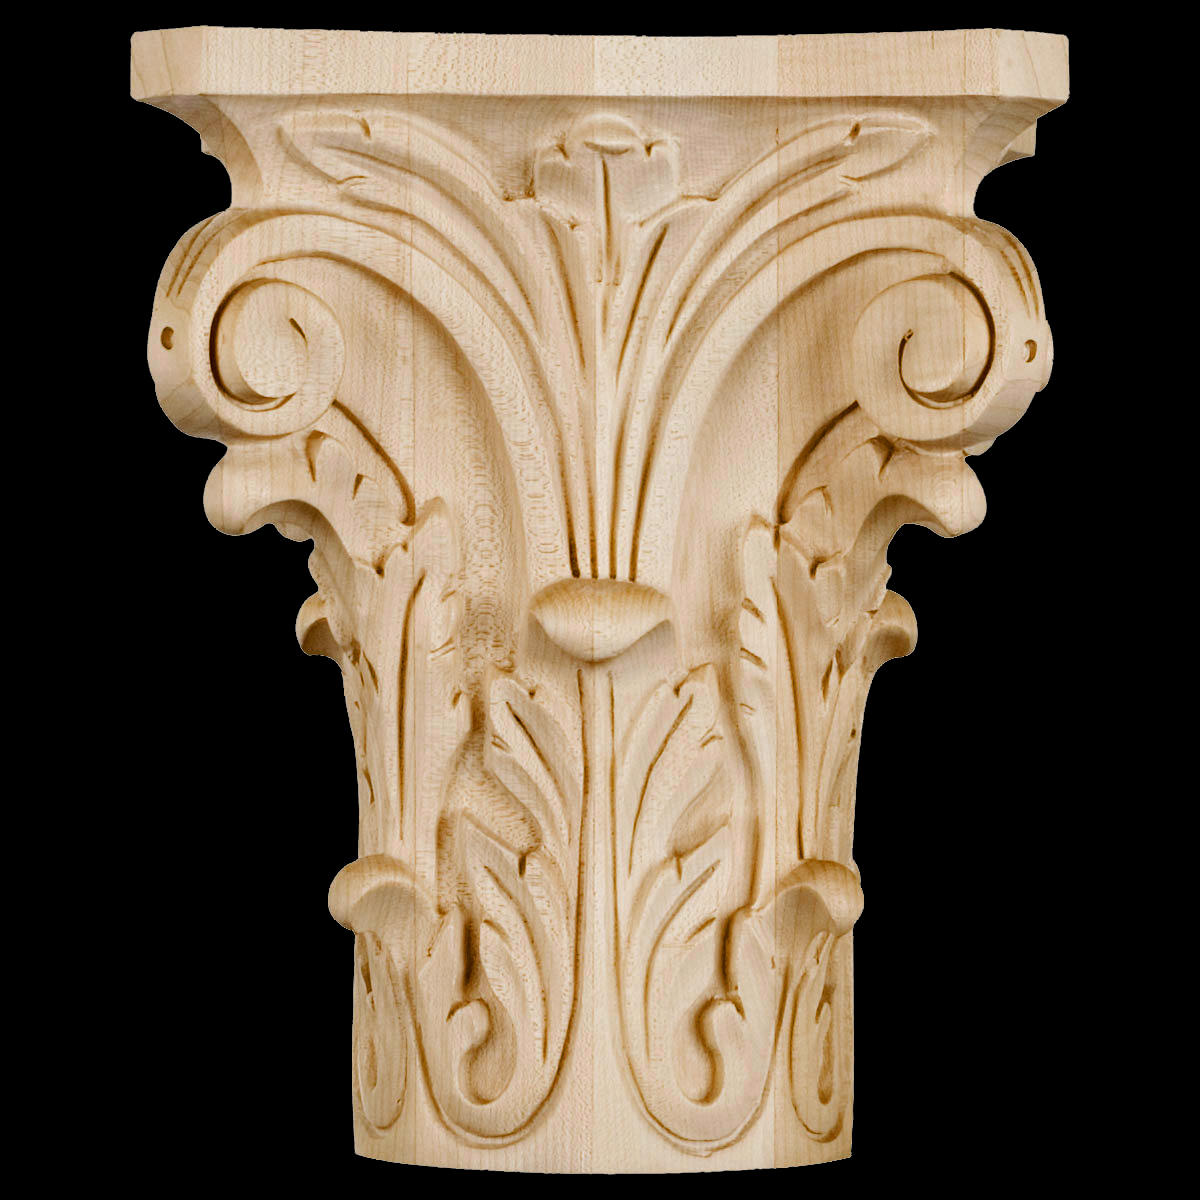 Acanthus Carving and Design http://shop.columns.com/carved-wood-acanthus-capital-1.aspx